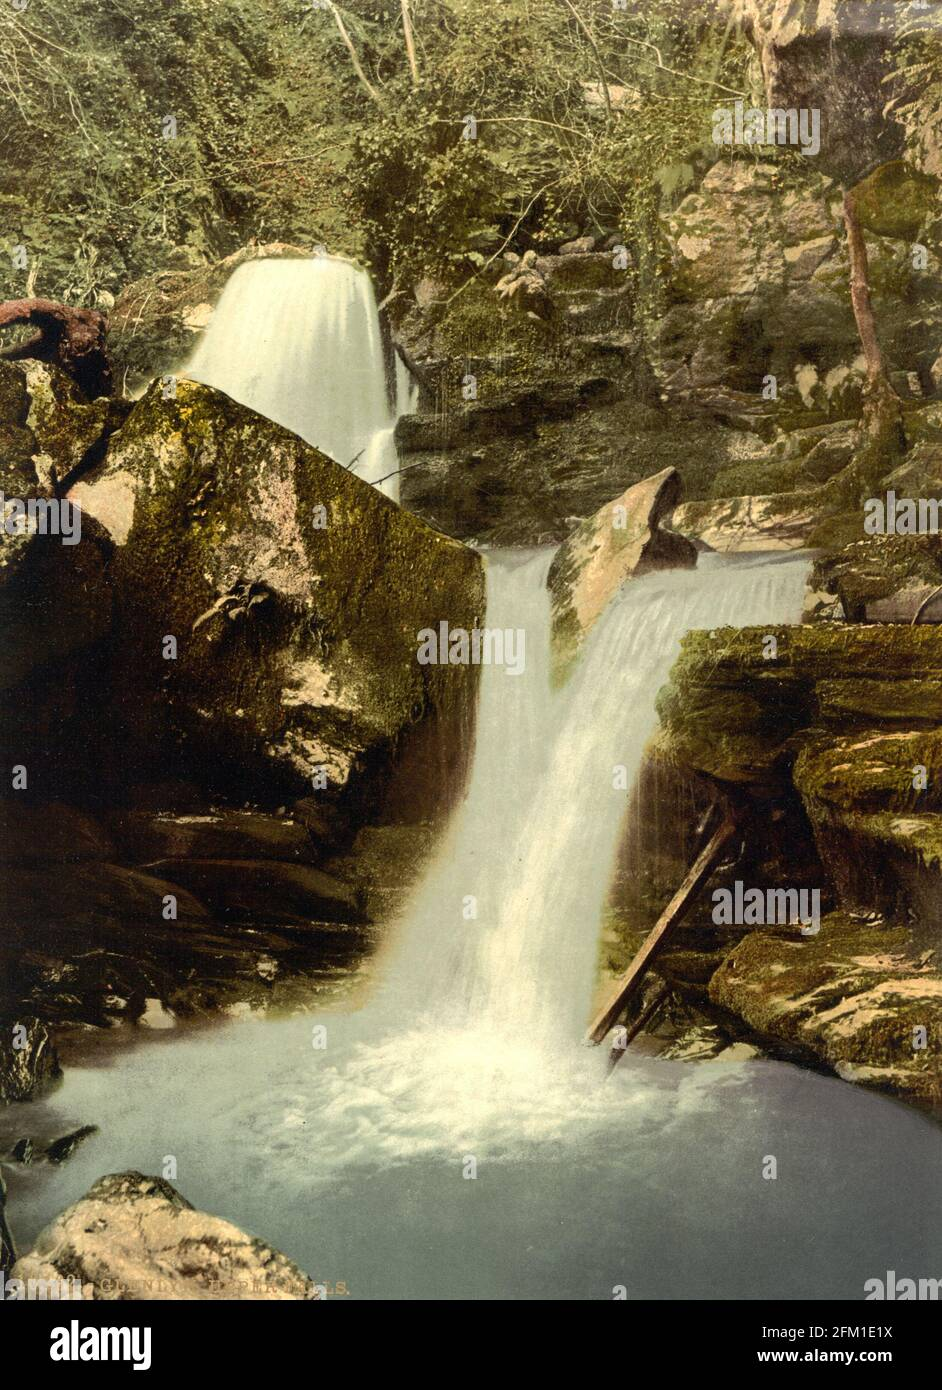 The Upper Falls of Glen Lyn Gorge near Lynmouth in Devin circa 1890-1900 Stock Photo